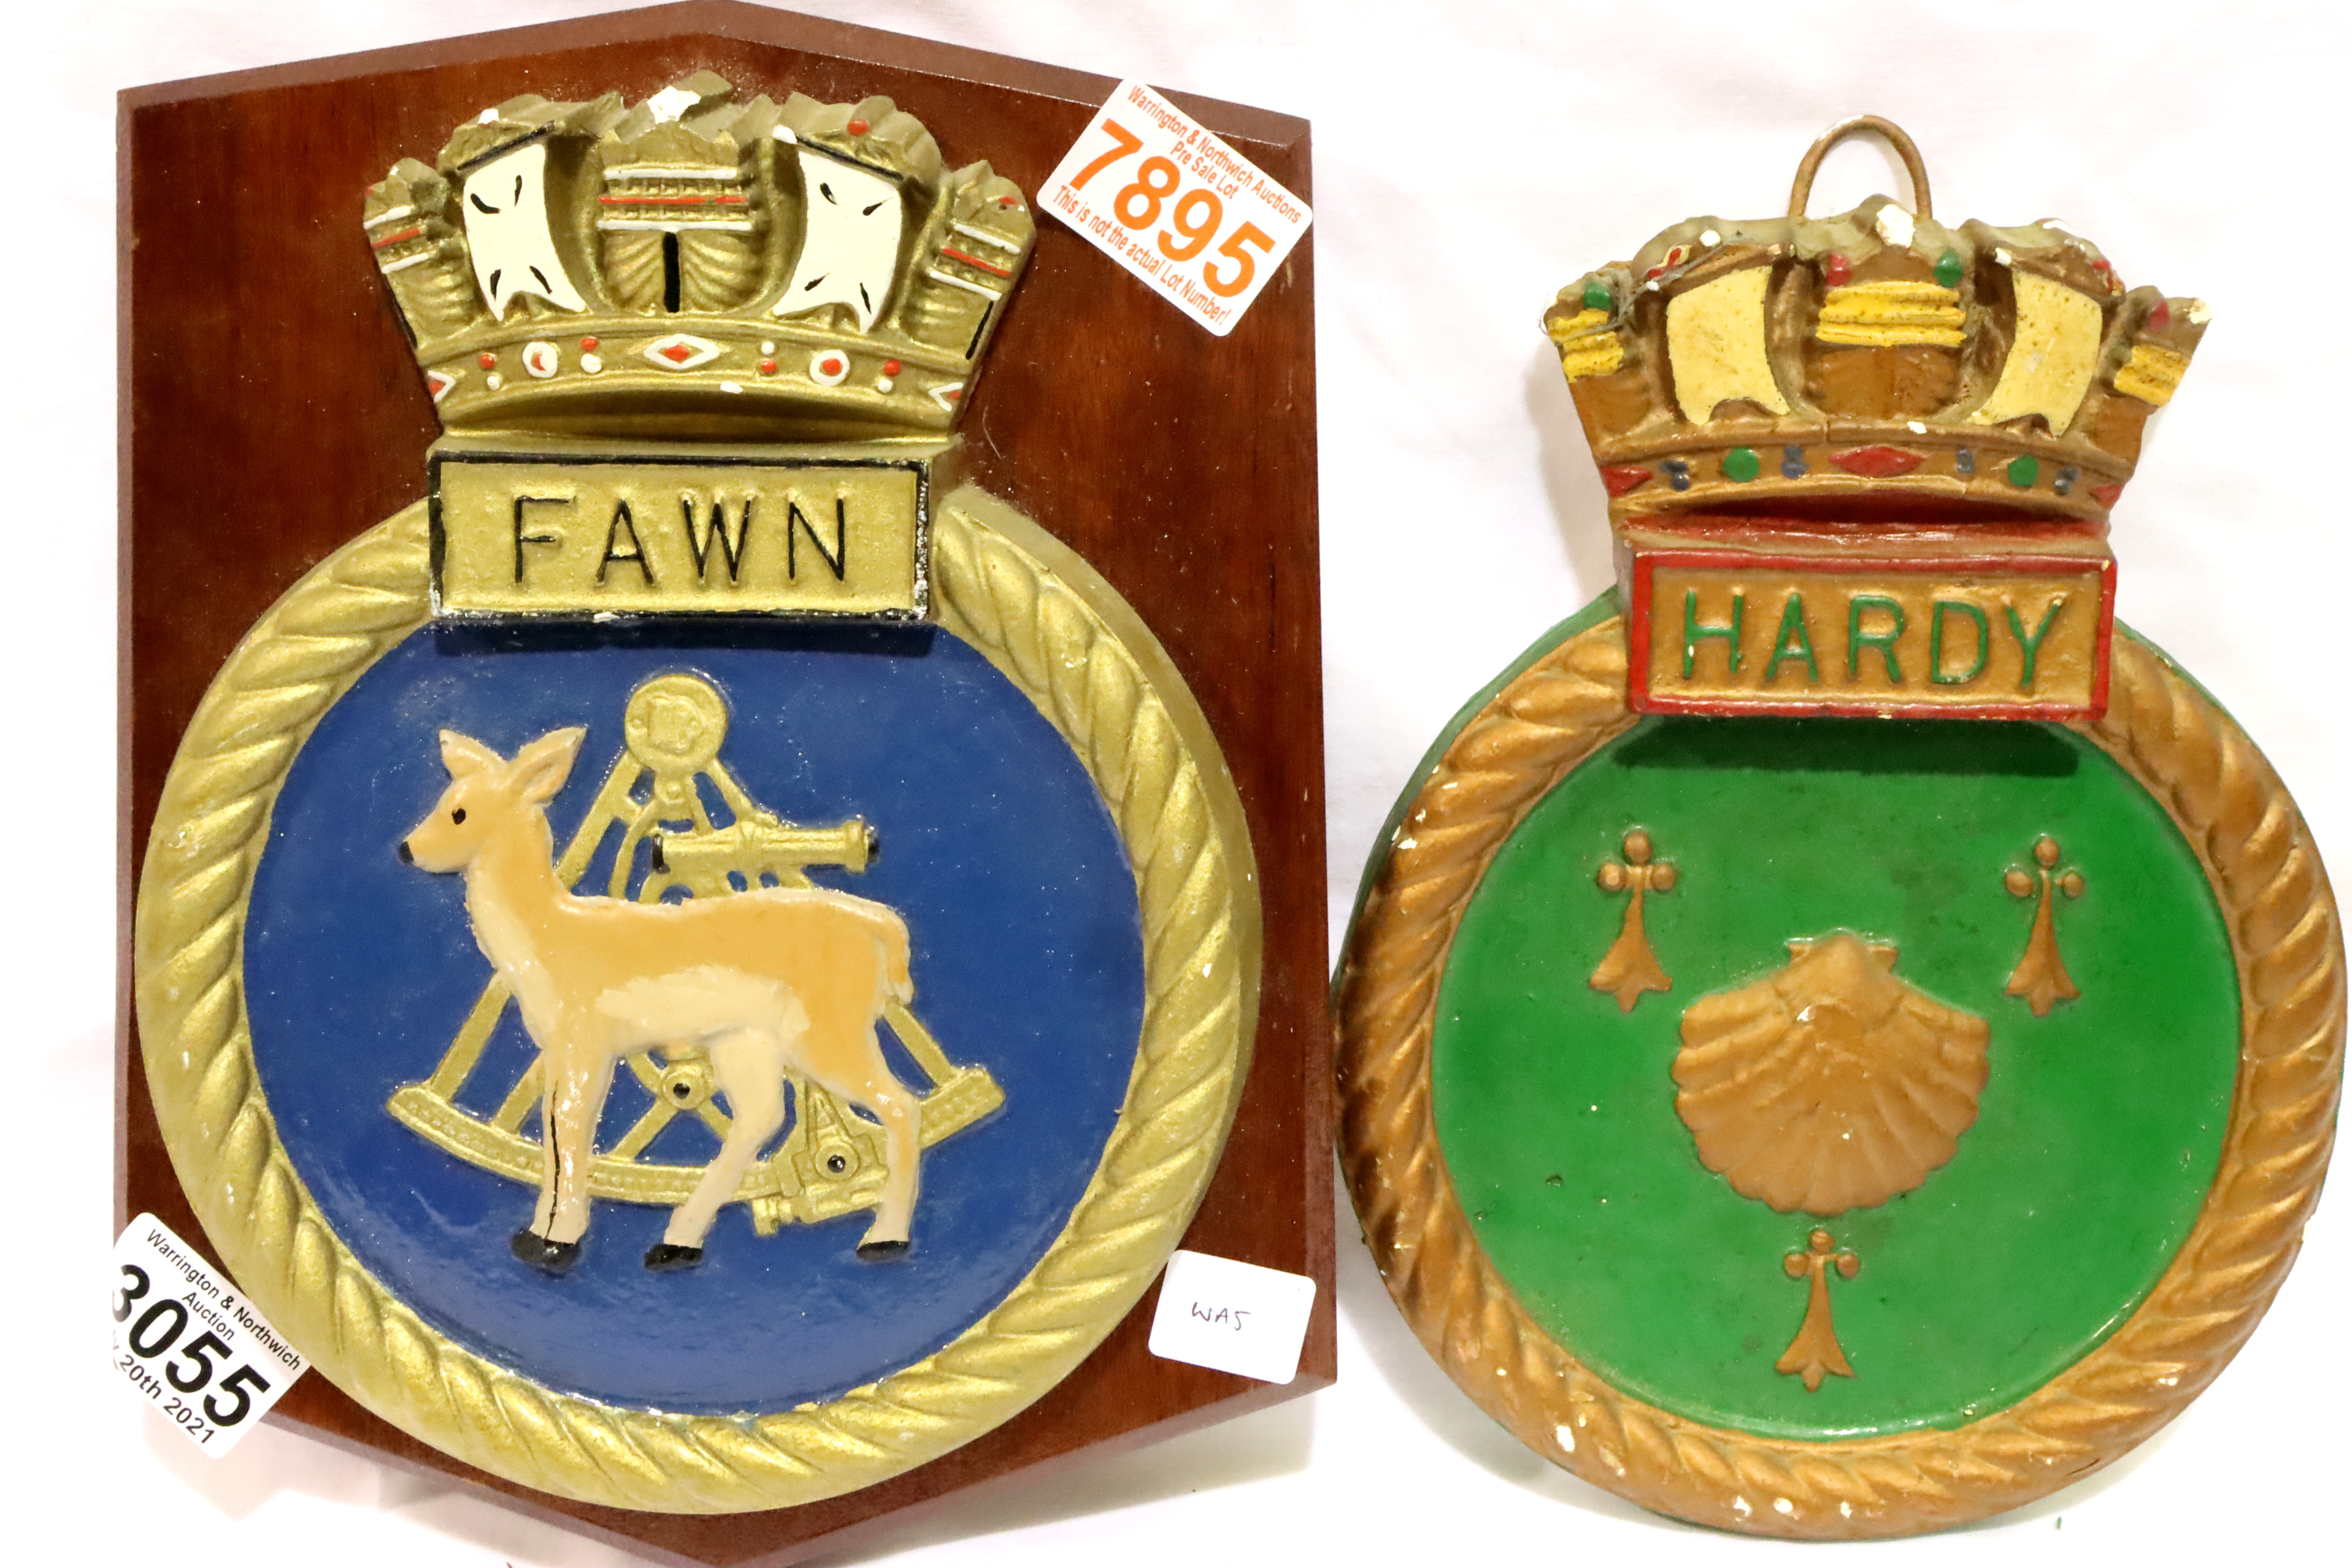 Vintage HMS FAWN plaster wall plaque, mounted on a mahogany shield, 27 x 21 cm, with an un-mounted